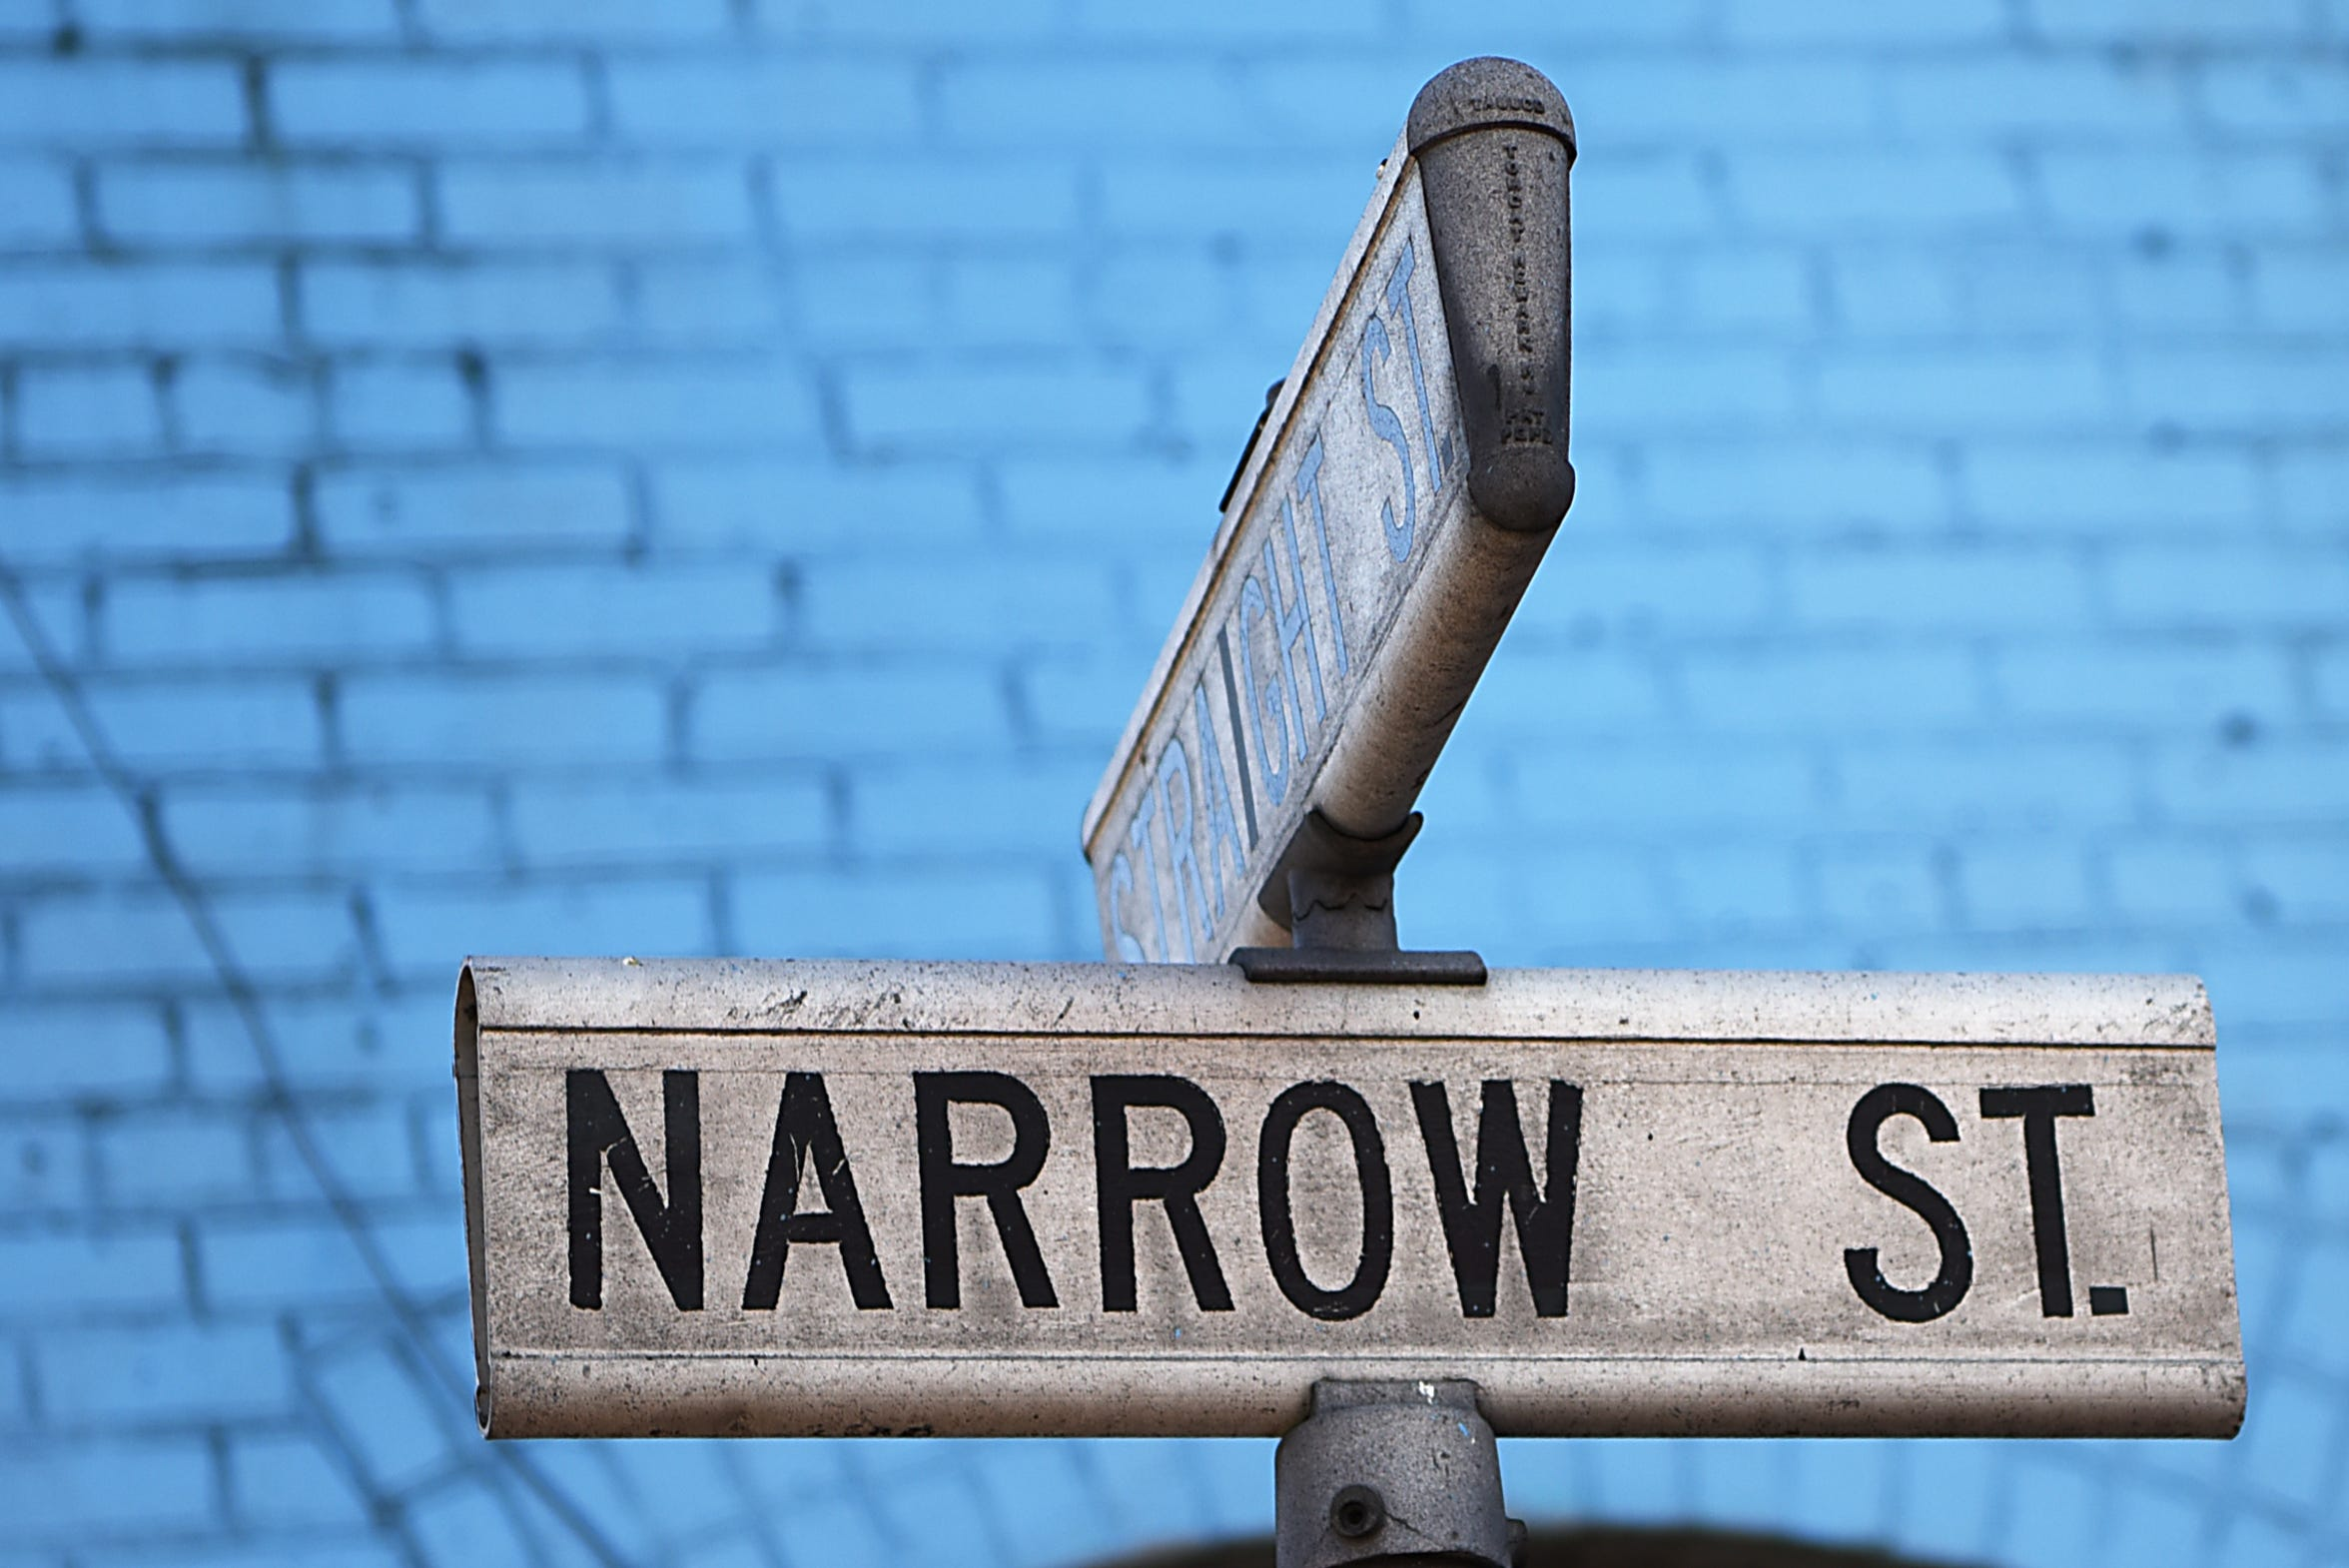 The Straight Street and Narrow Street signs in Paterson on Thursday, Oct. 18, 2018. The corner gave the organization its name.